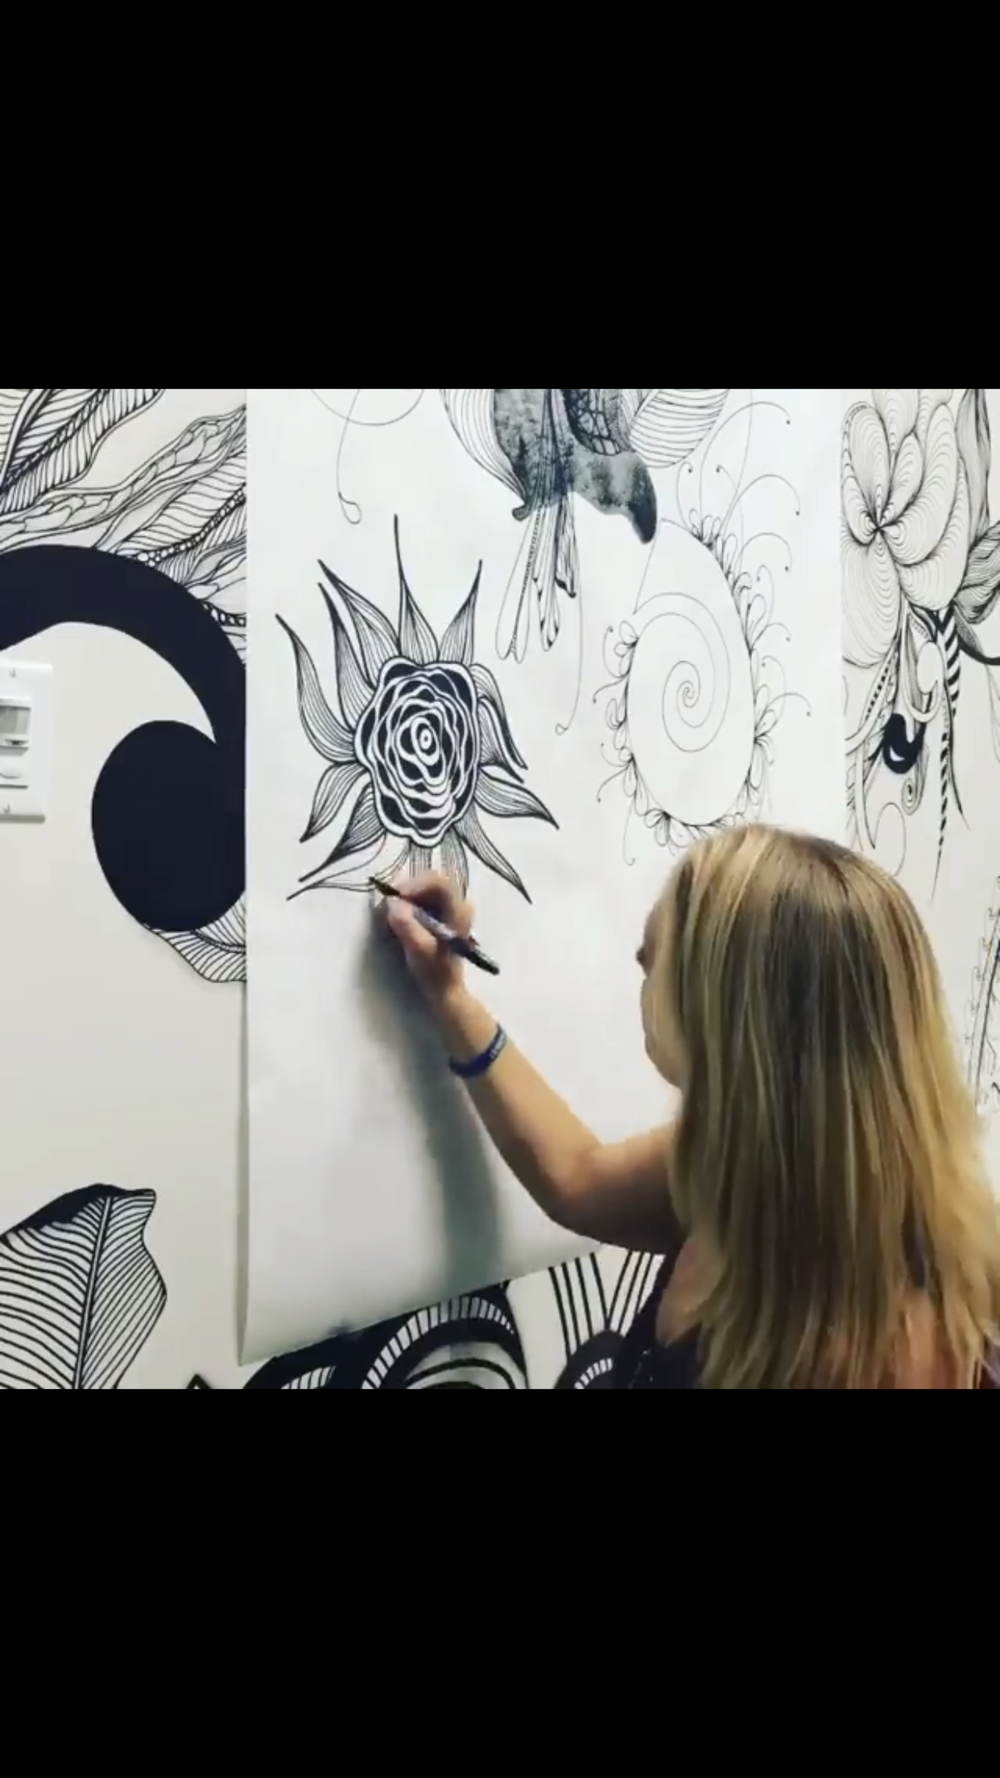 Each artwork is unplanned and     unique.